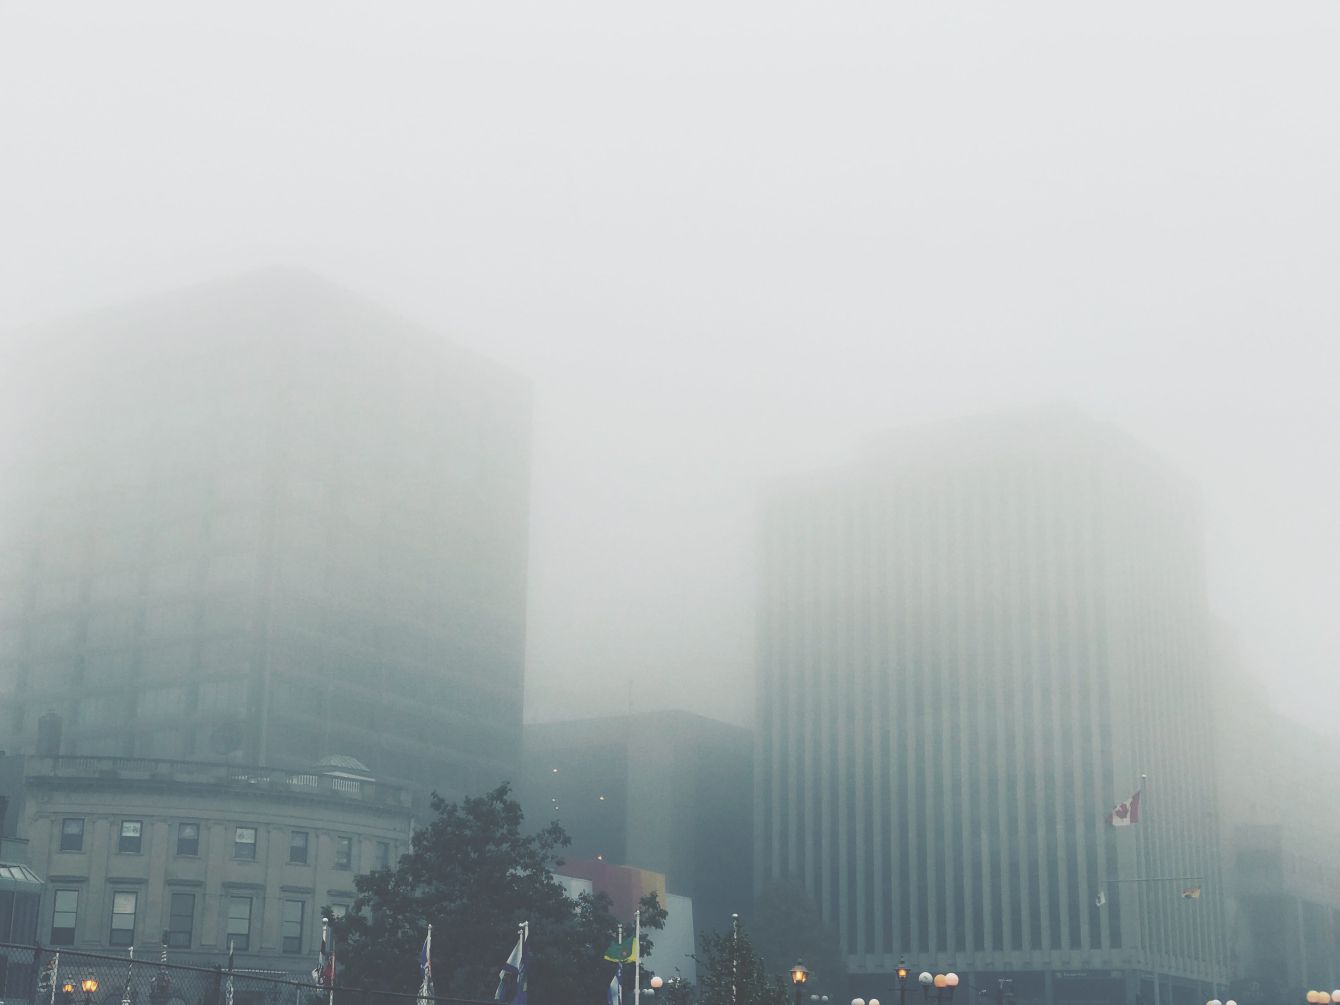 Click thumbnail to see details about photo - Foggy Saint John Buildings Photograph